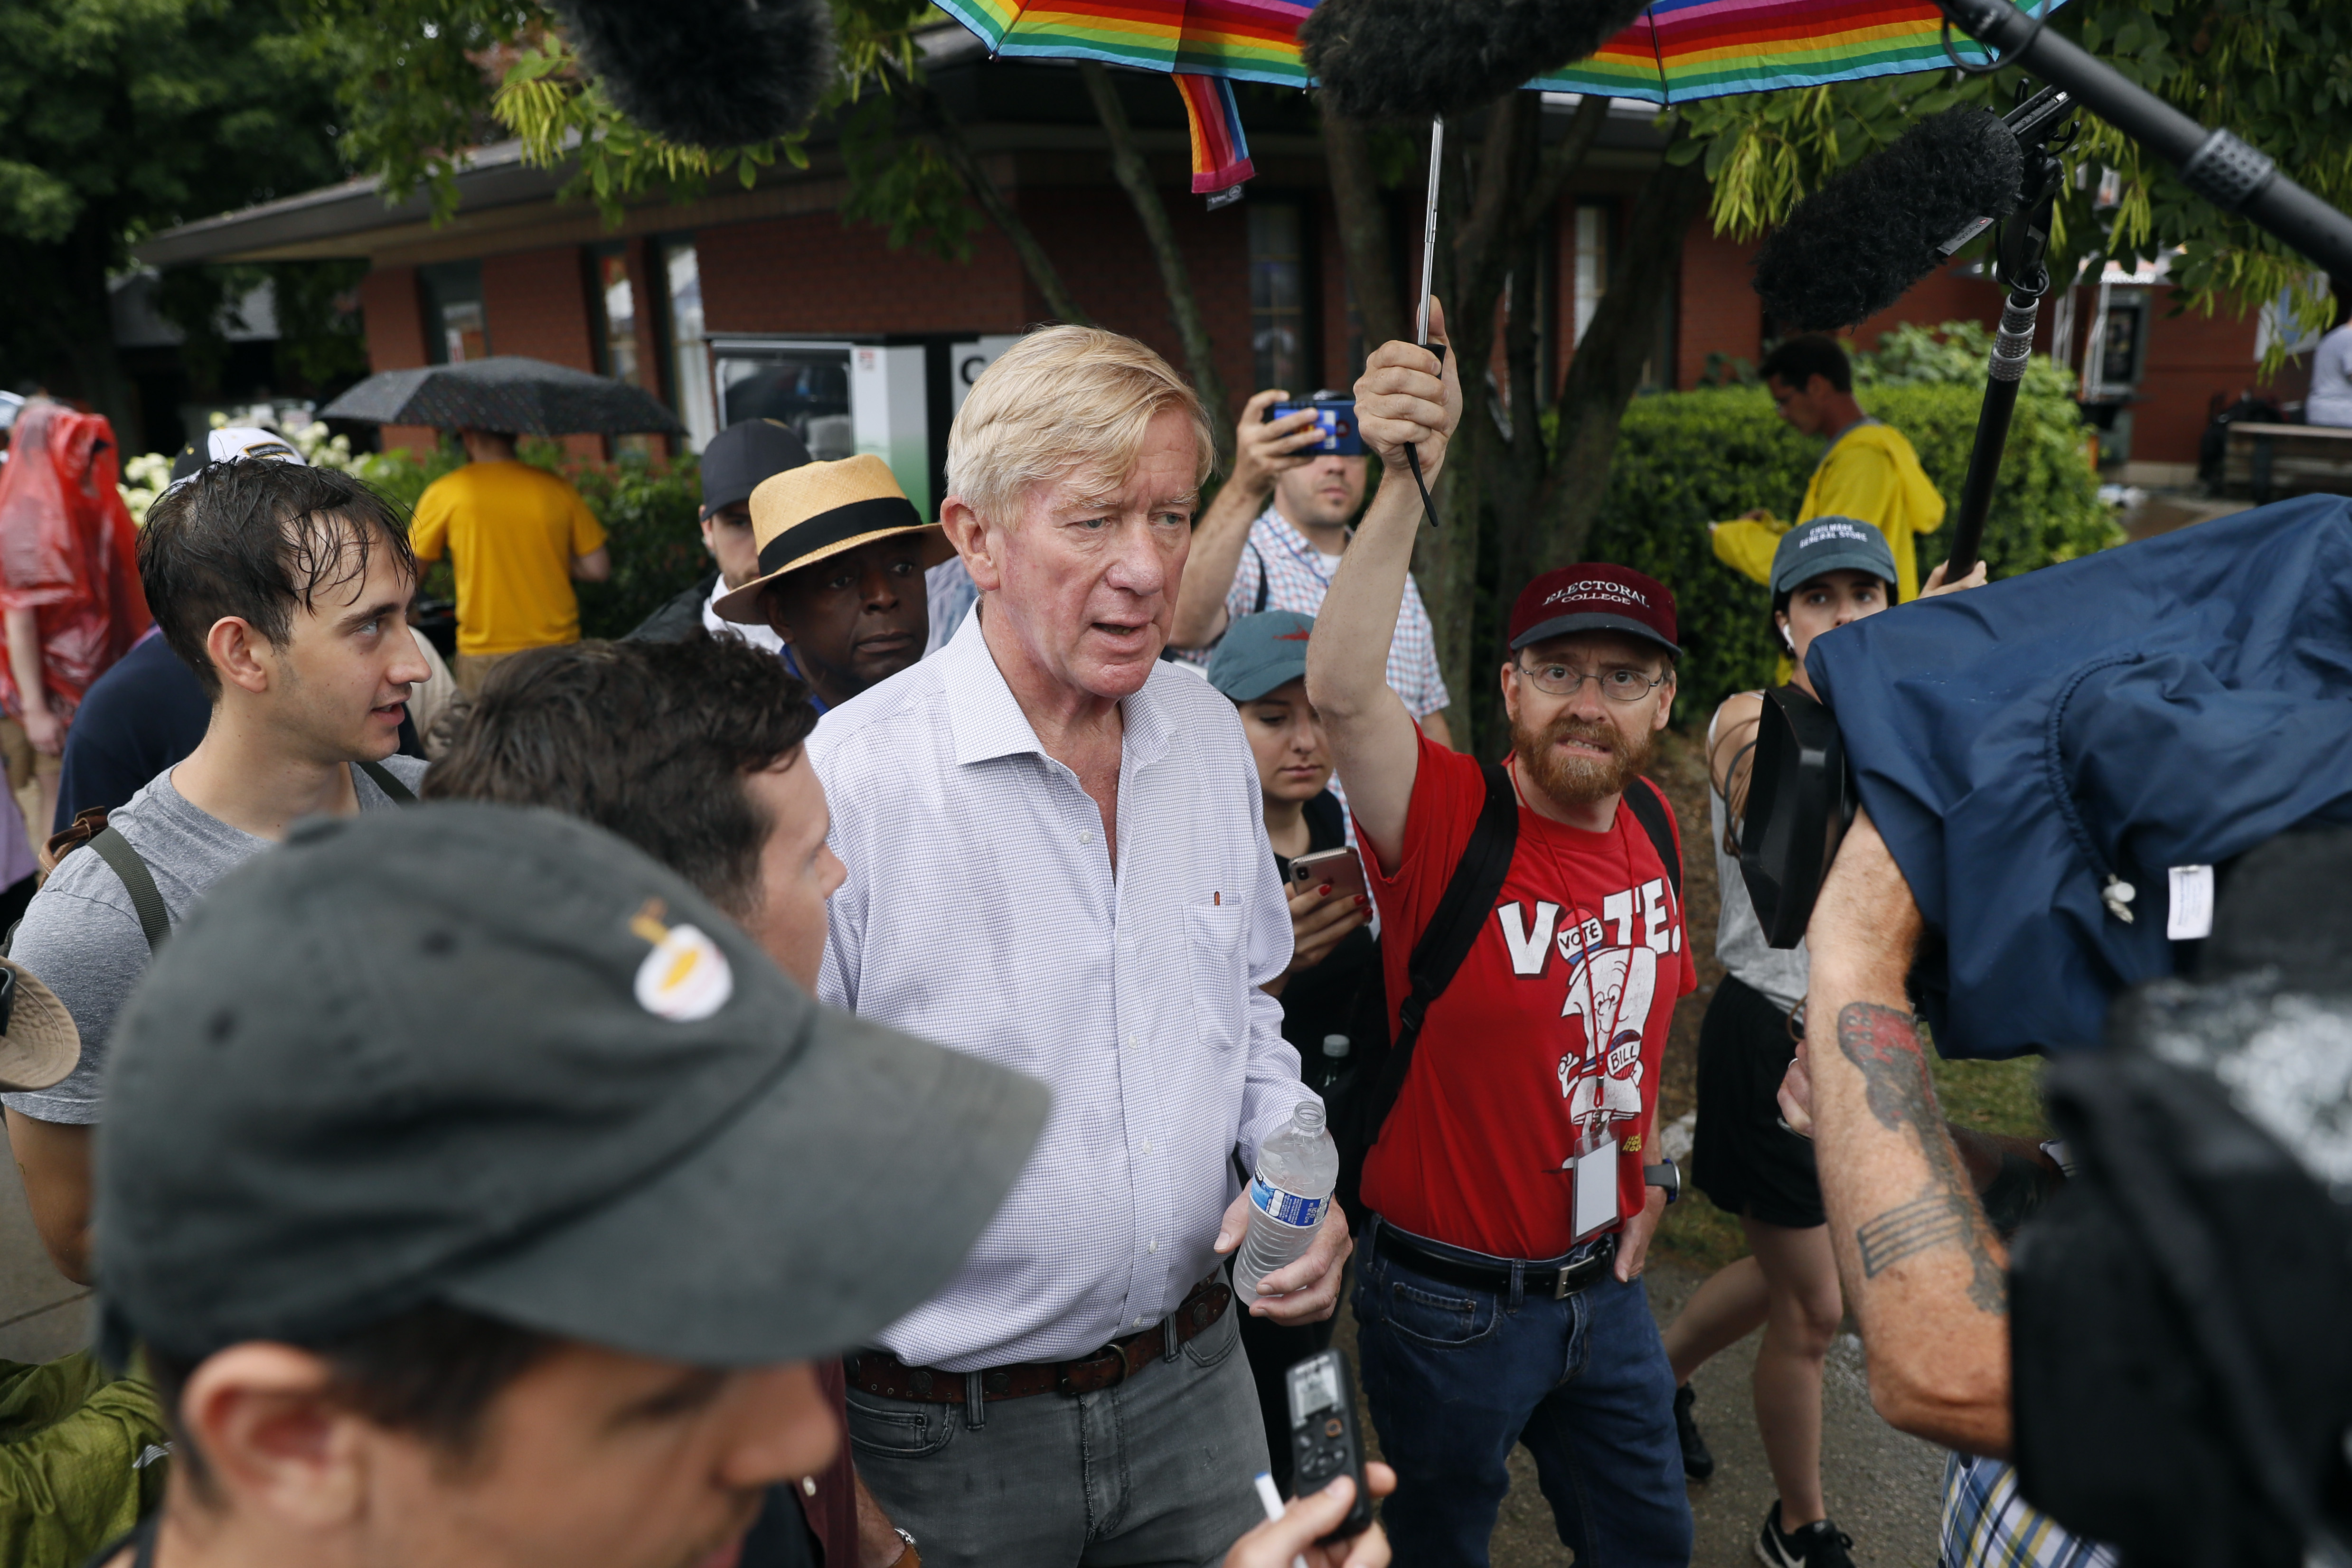 EDITORIAL: Why Bill Weld, Mark Sanford and Joe Walsh need to wake up and smell the coffee